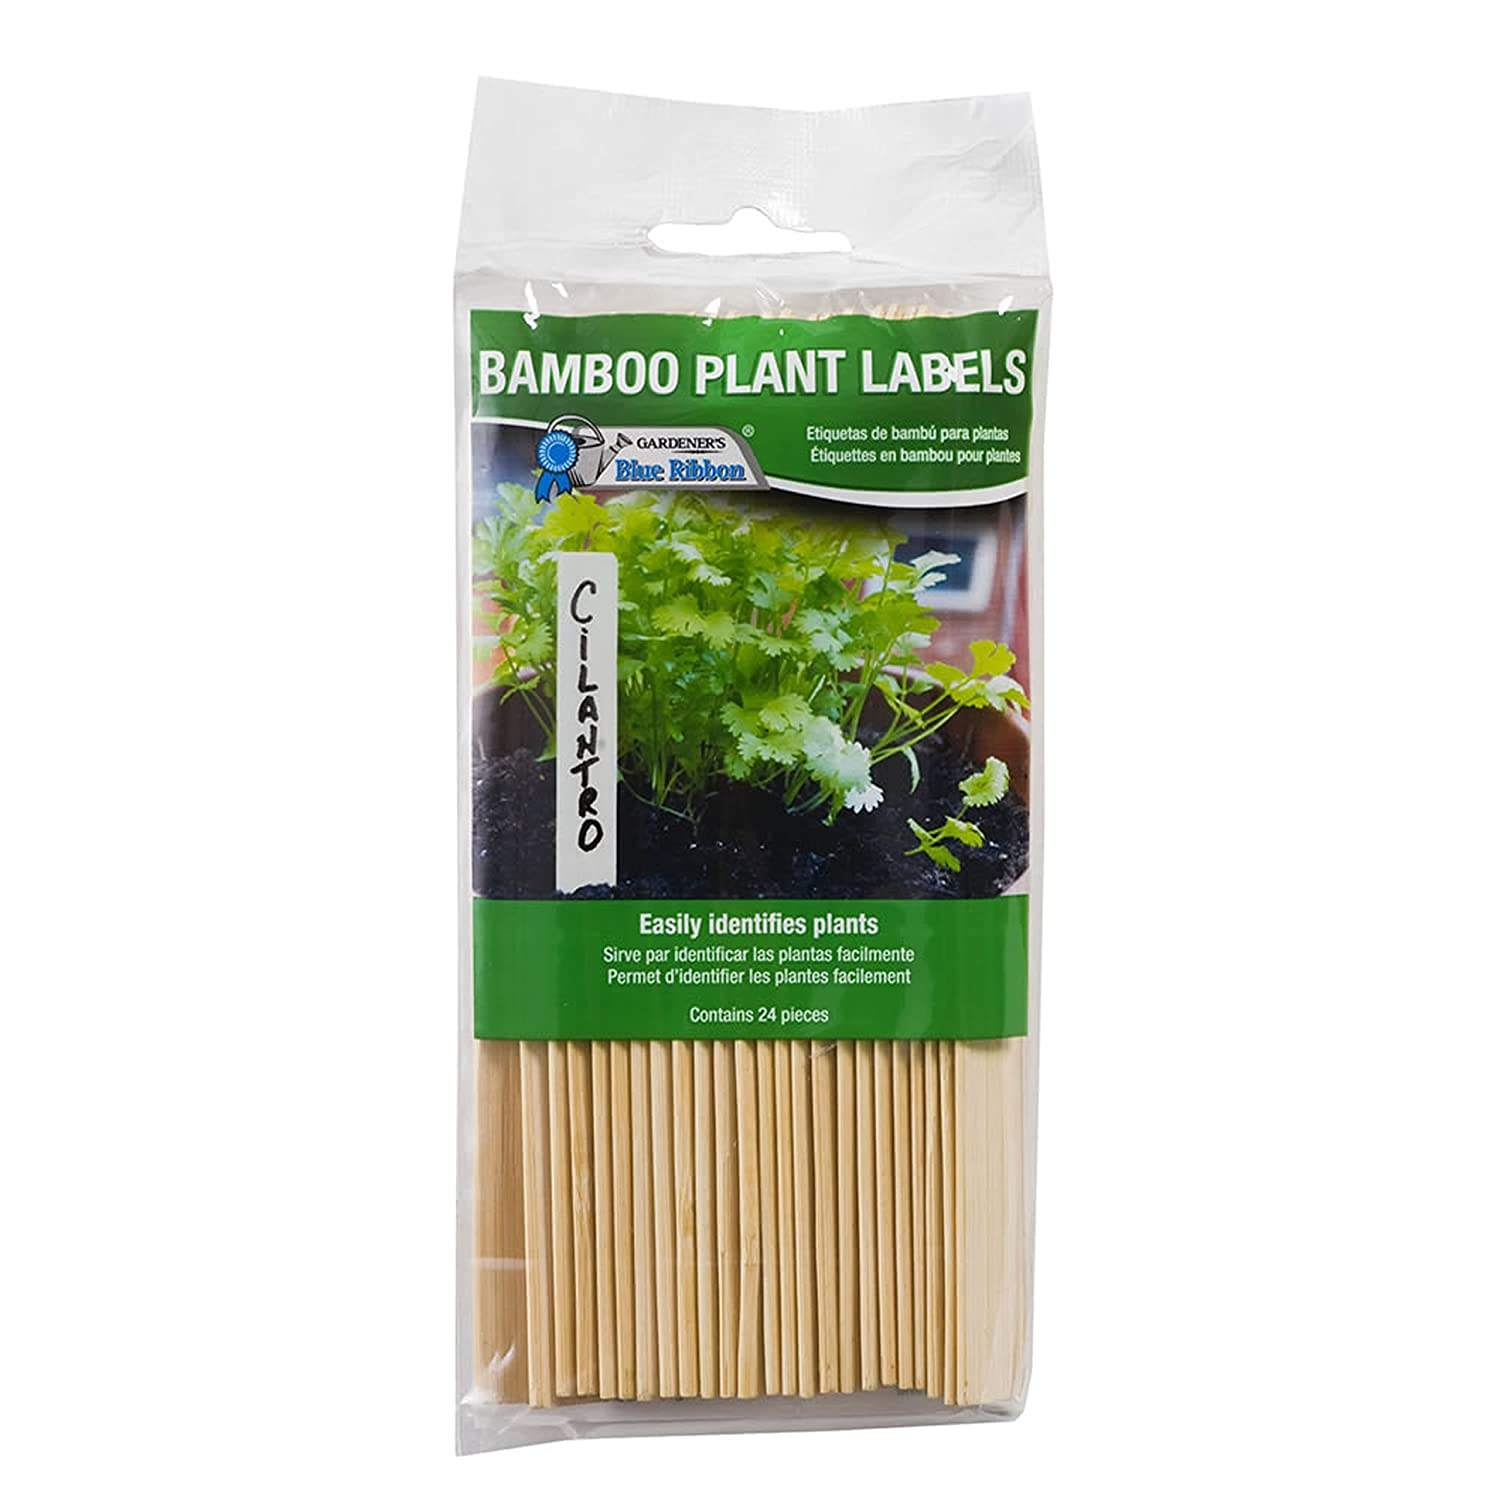 Gardener's Blue Ribbon T020B Bamboo Wood Plant Labels (24 Pack), 6""